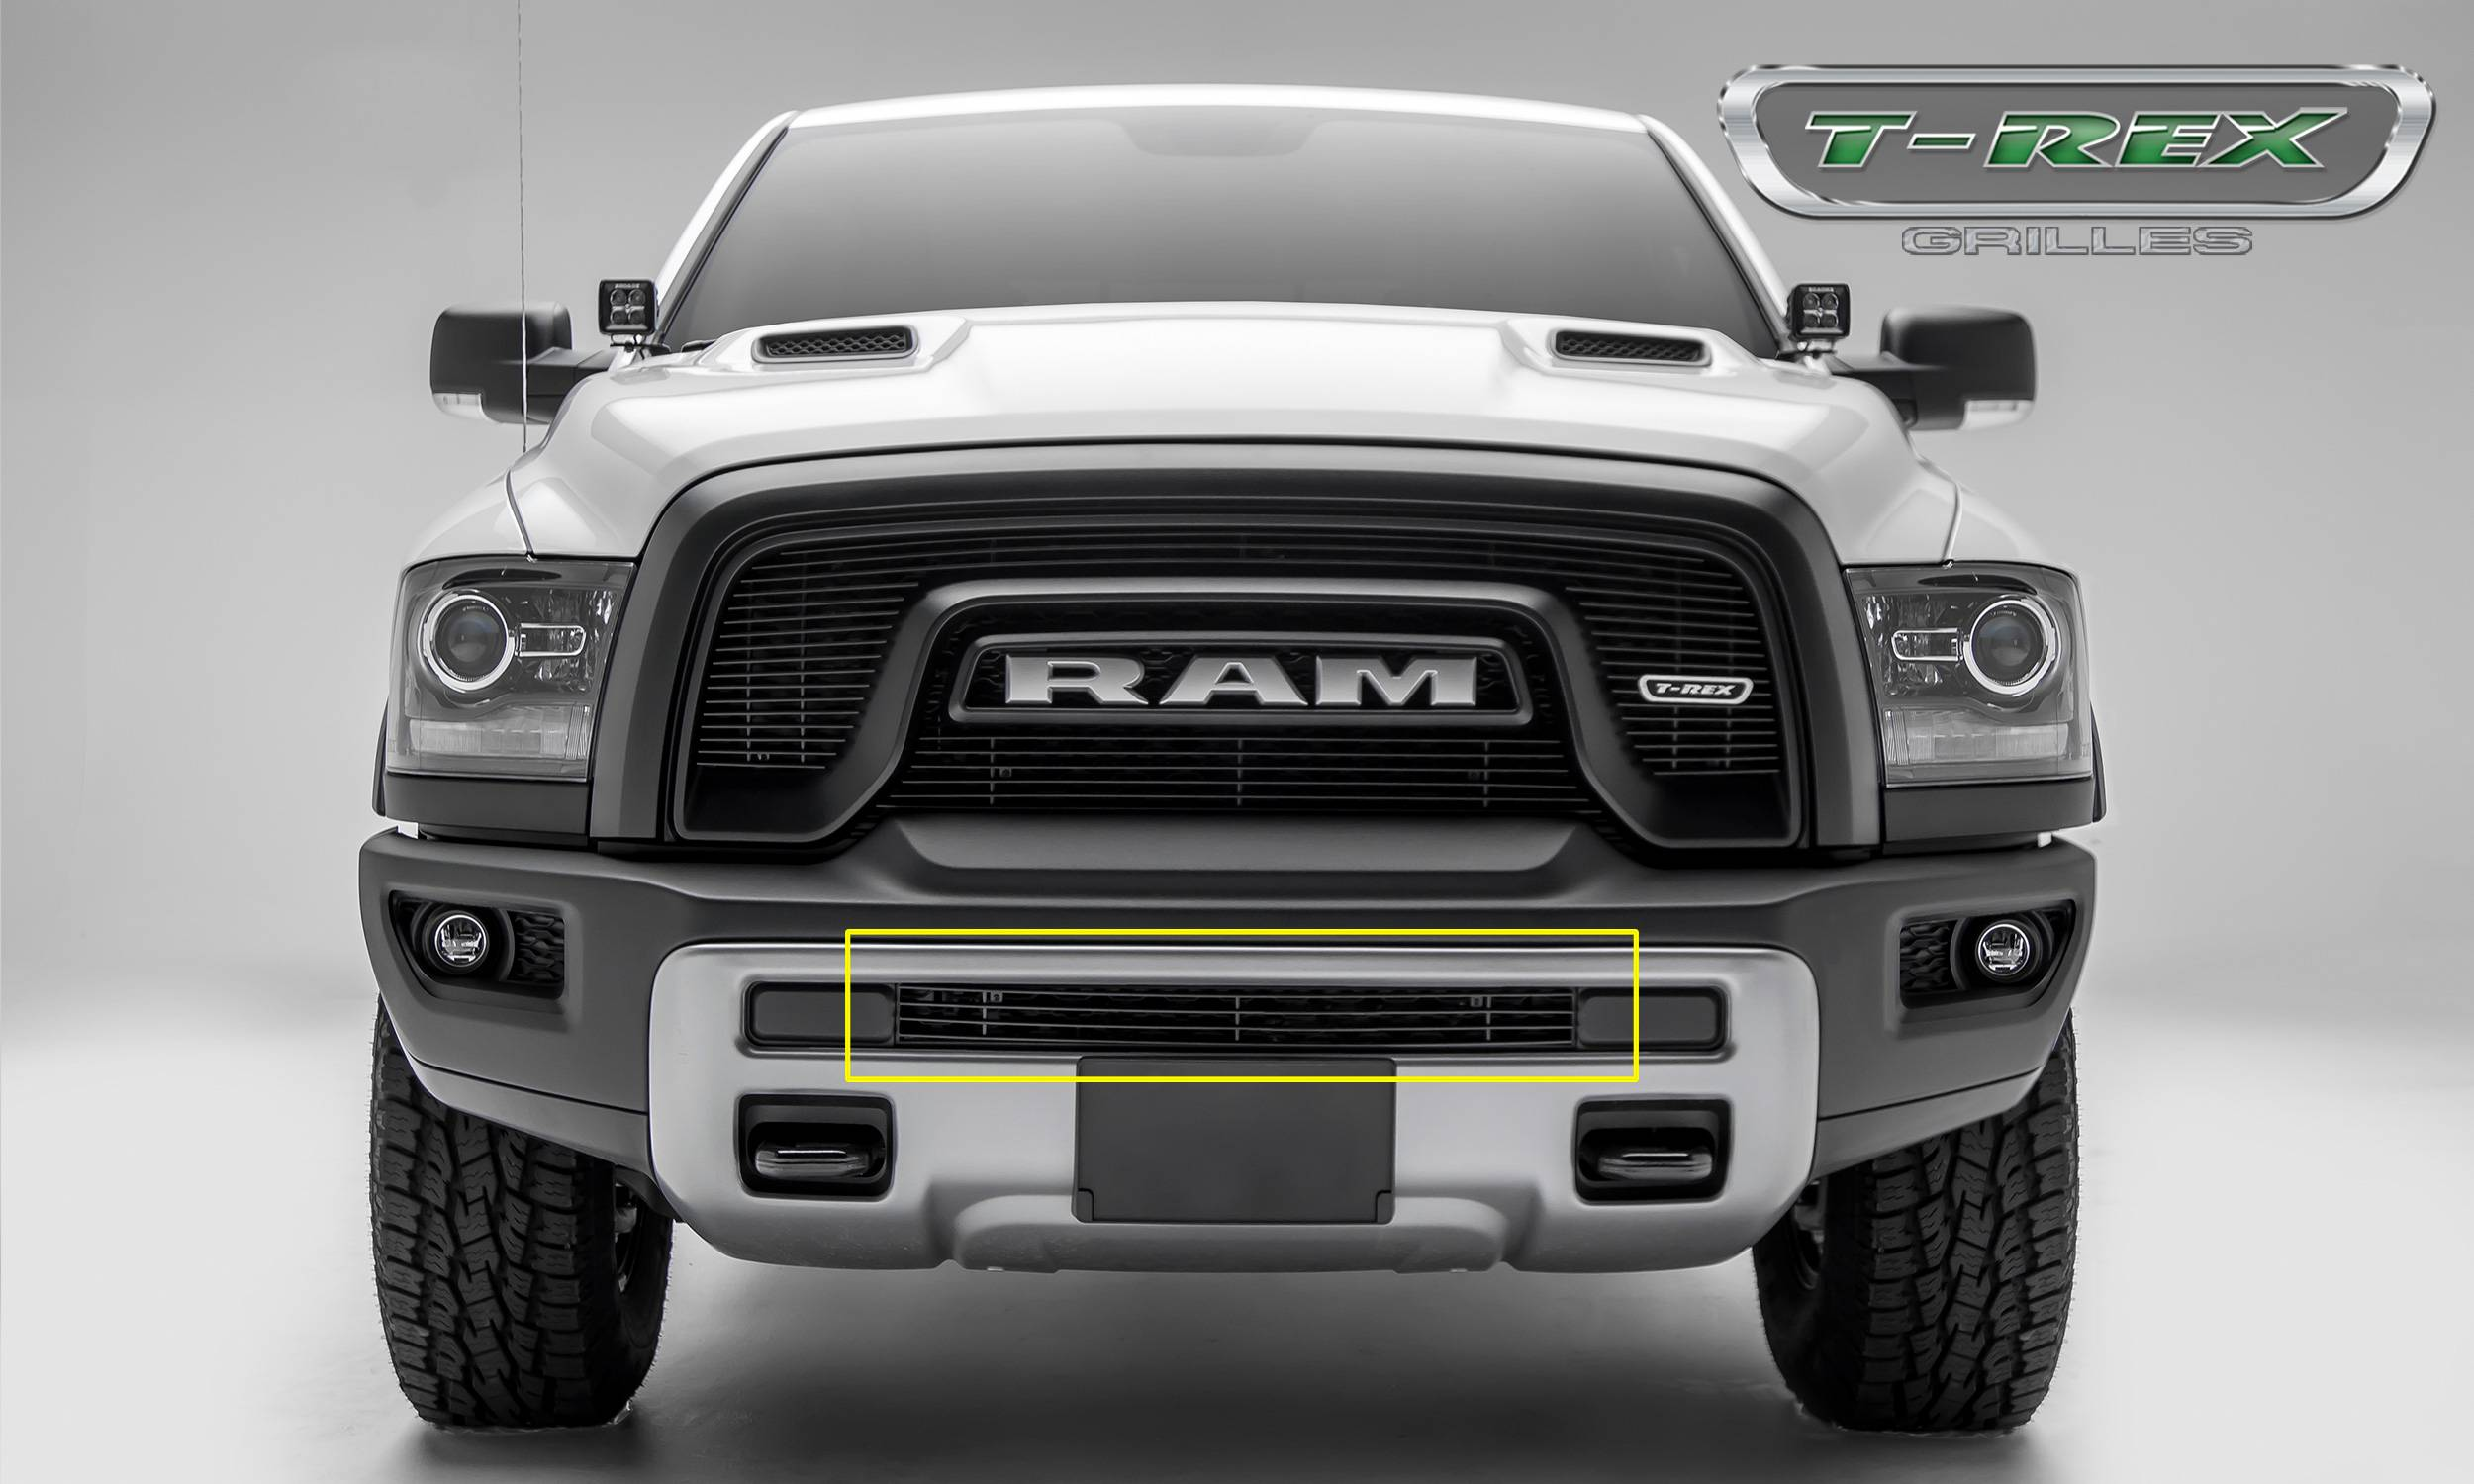 T-REX Ram Rebel - Billet Series - Bumper Grille Overlay - Aluminum w/ Black Powder Coated Finish - Part #254641B